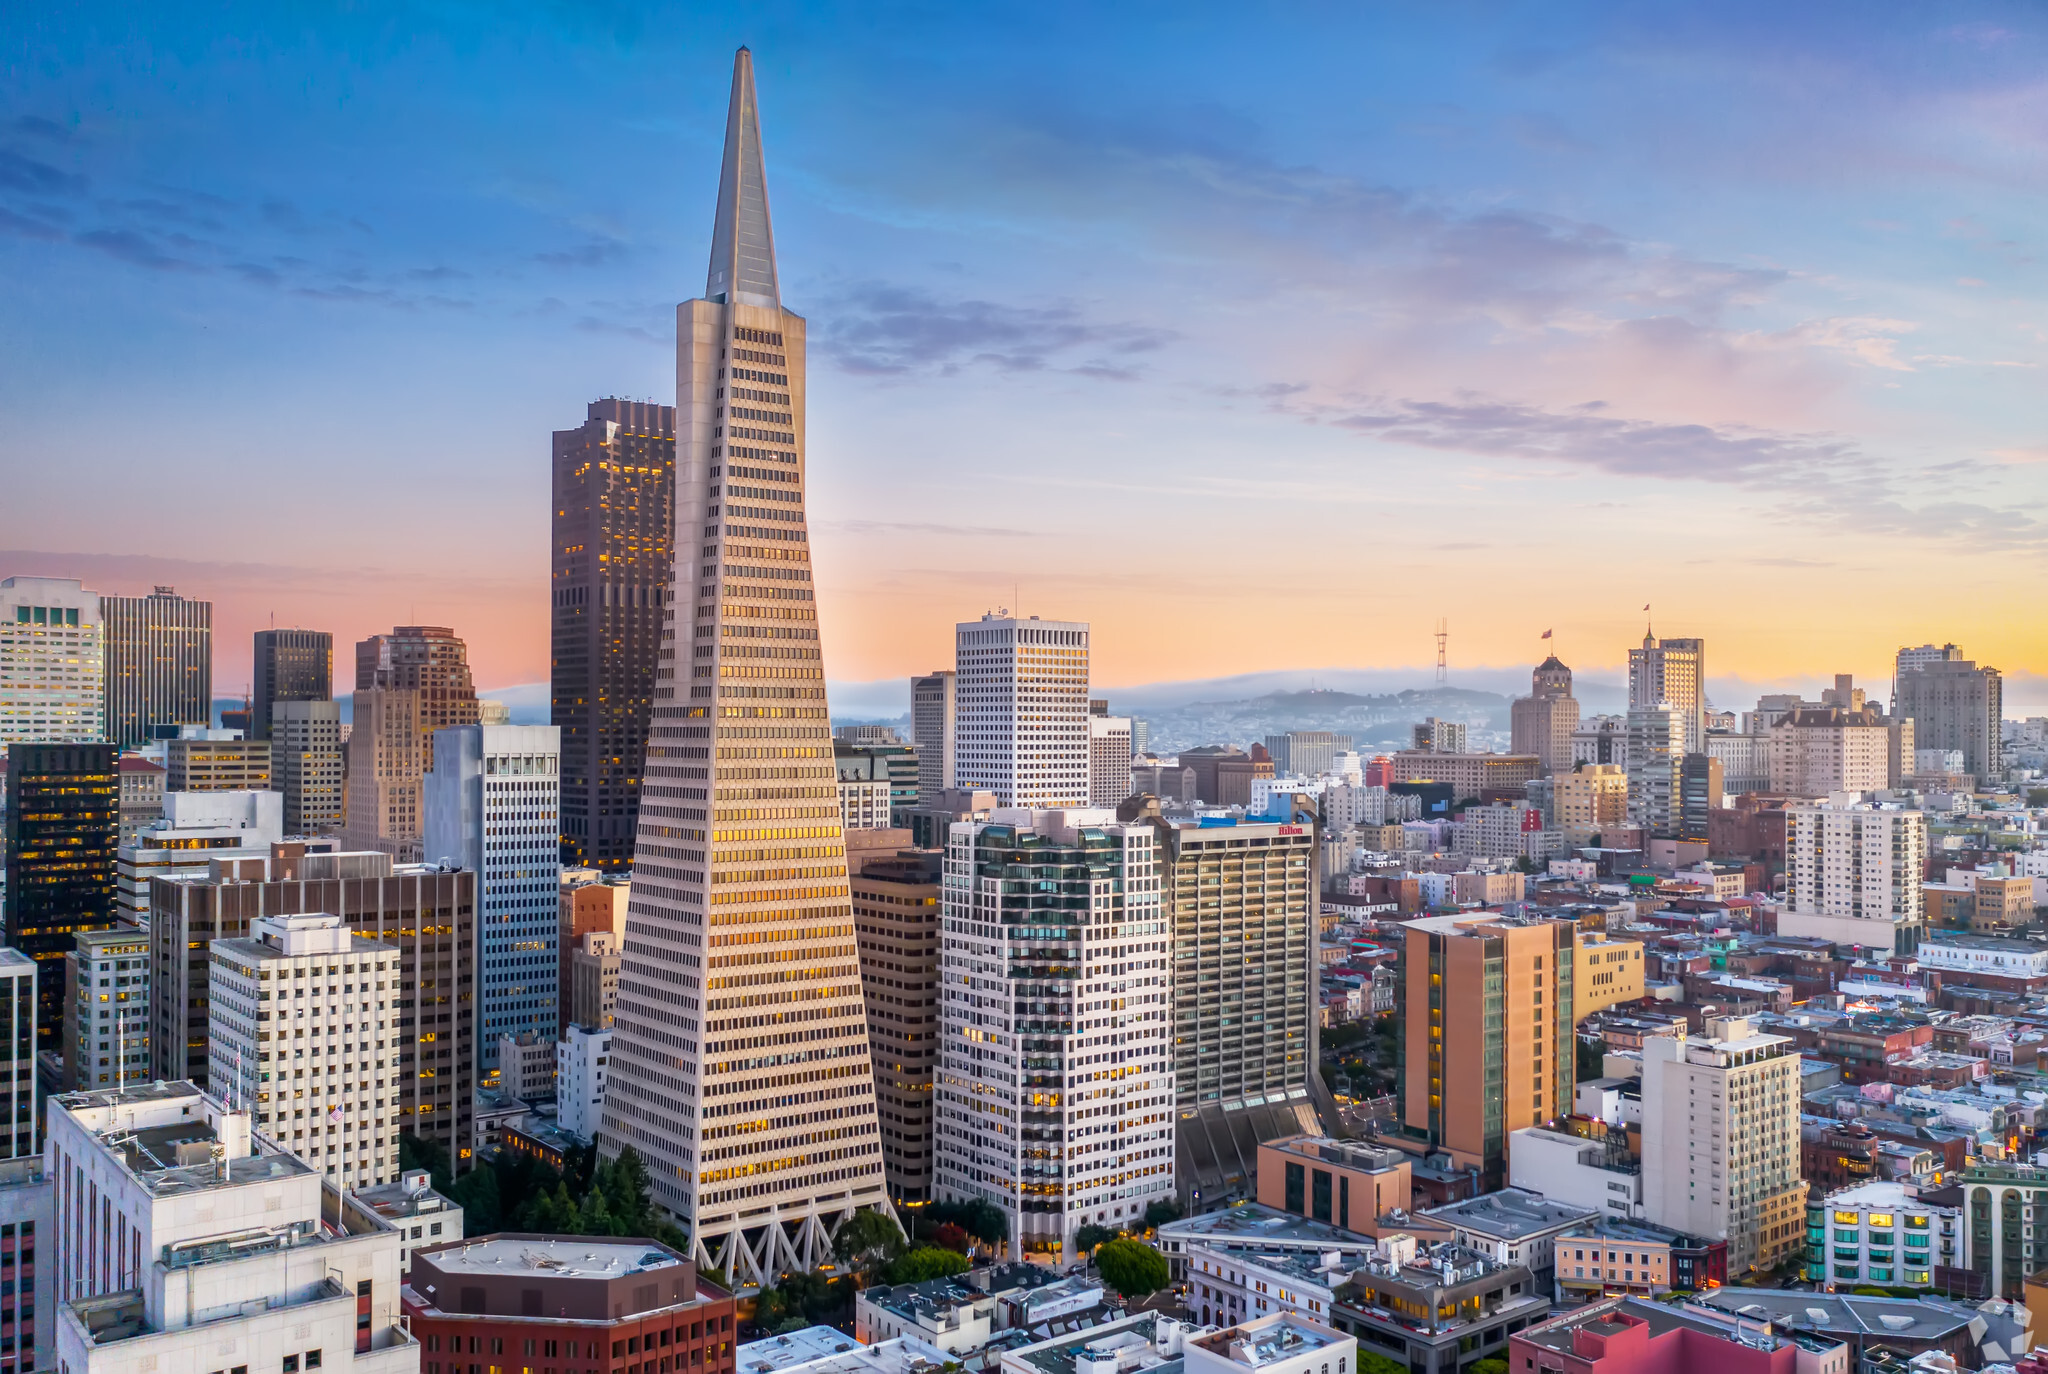 The Transamerica Pyramid building has been a mainstay of the San Francisco skyline since its 1972 opening. (CoStar)